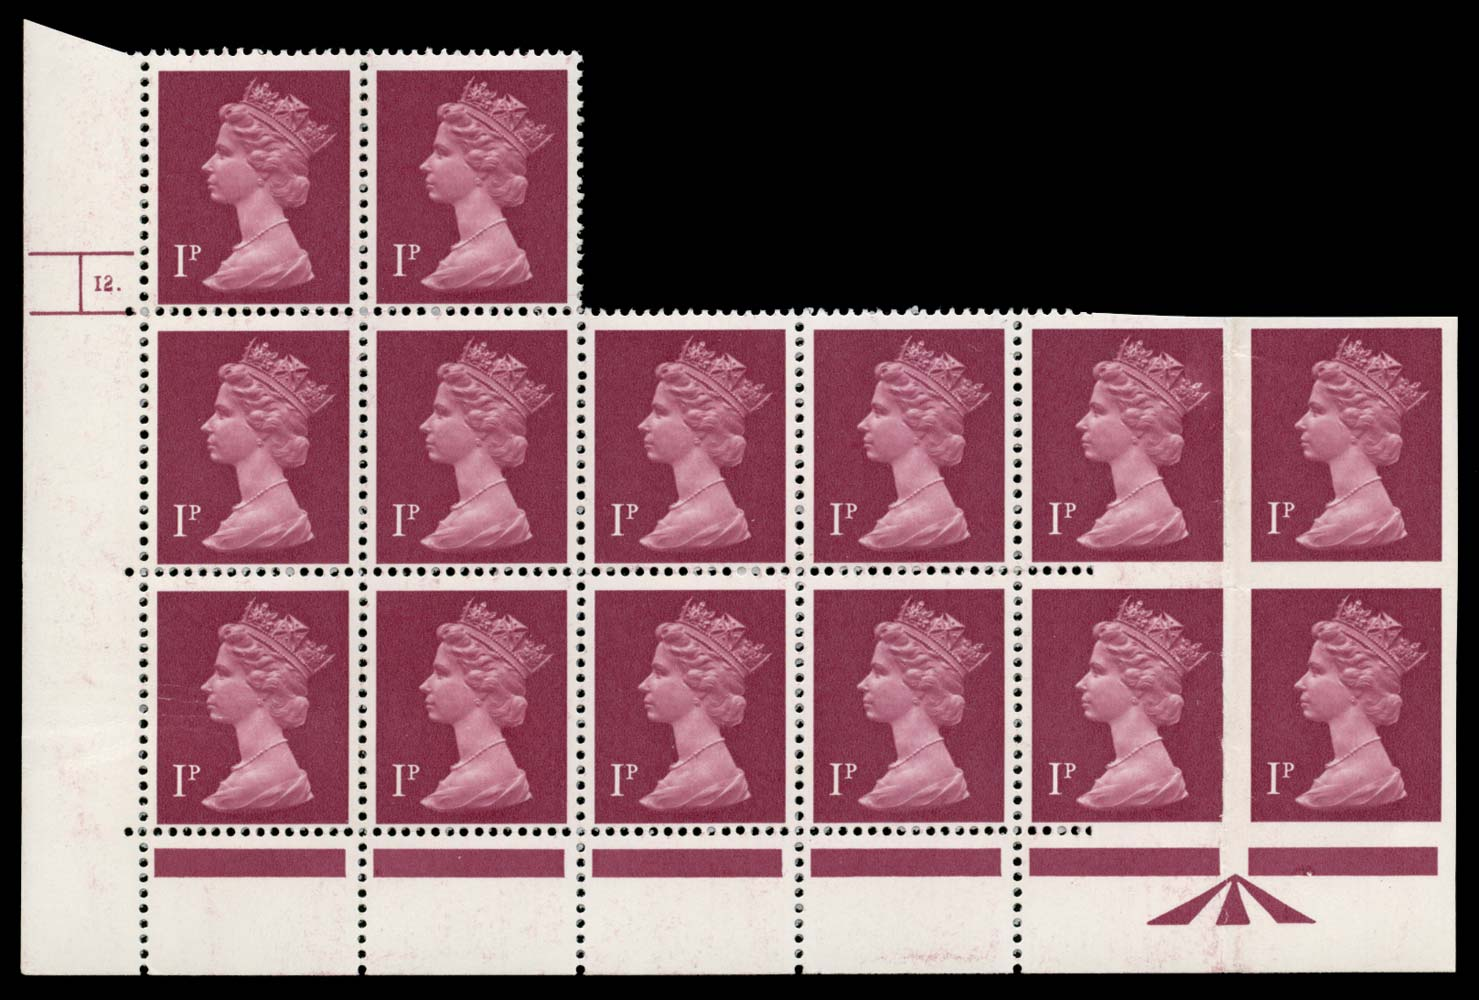 GB 1979  SGX925a Mint - imperforate pair from Cylinder 12.